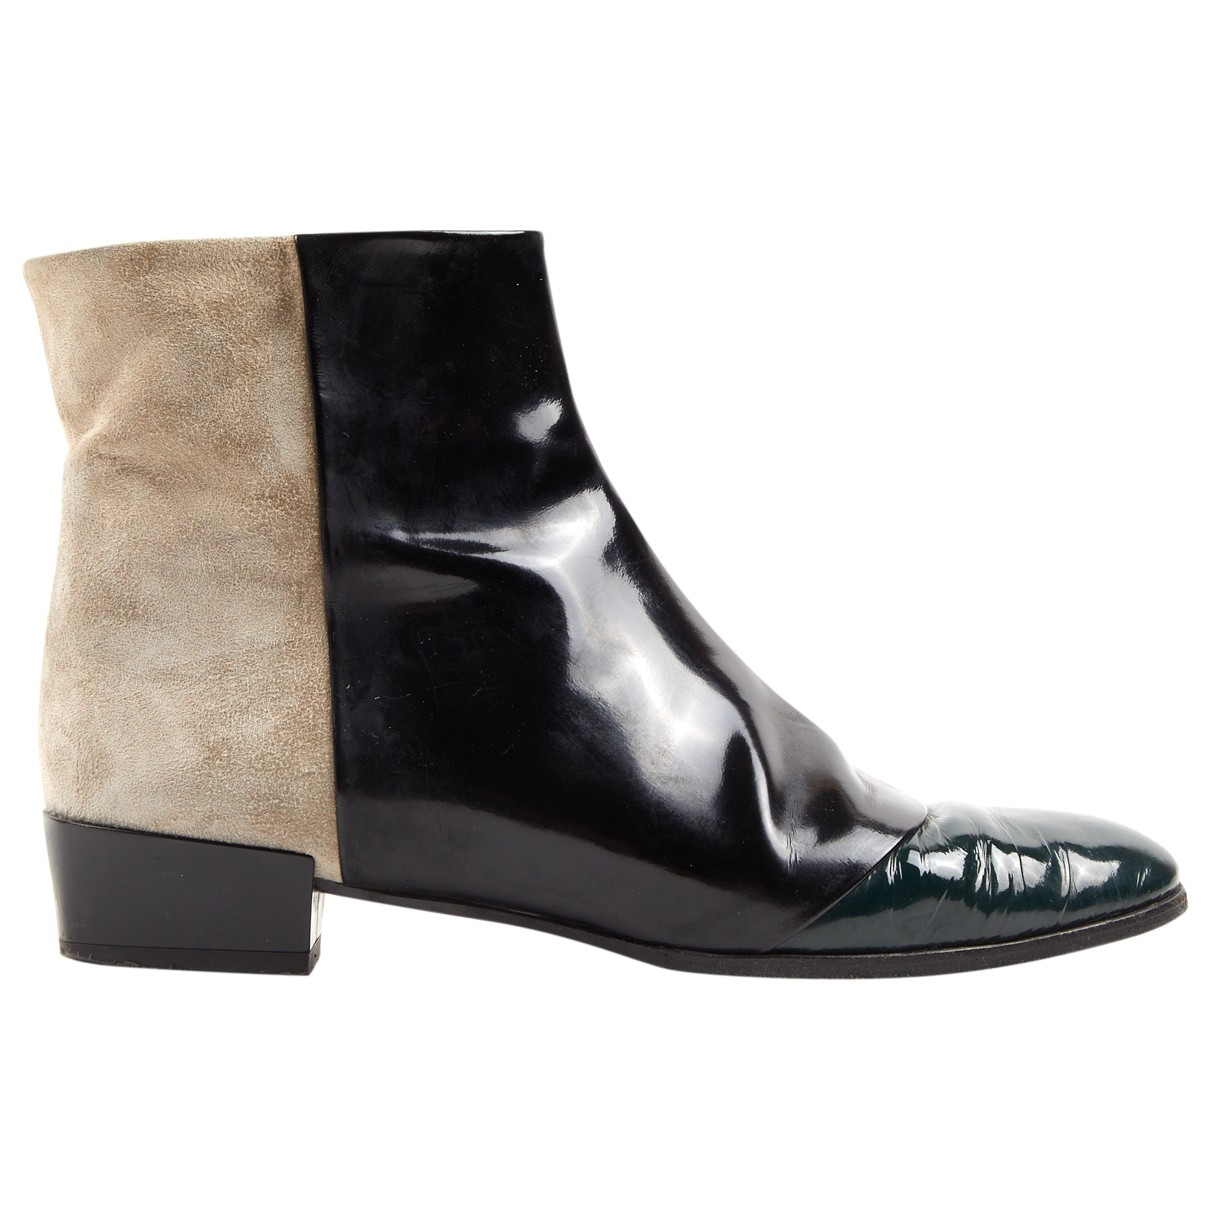 Roger Vivier \N Black Patent leather Ankle boots for Women 37 EU